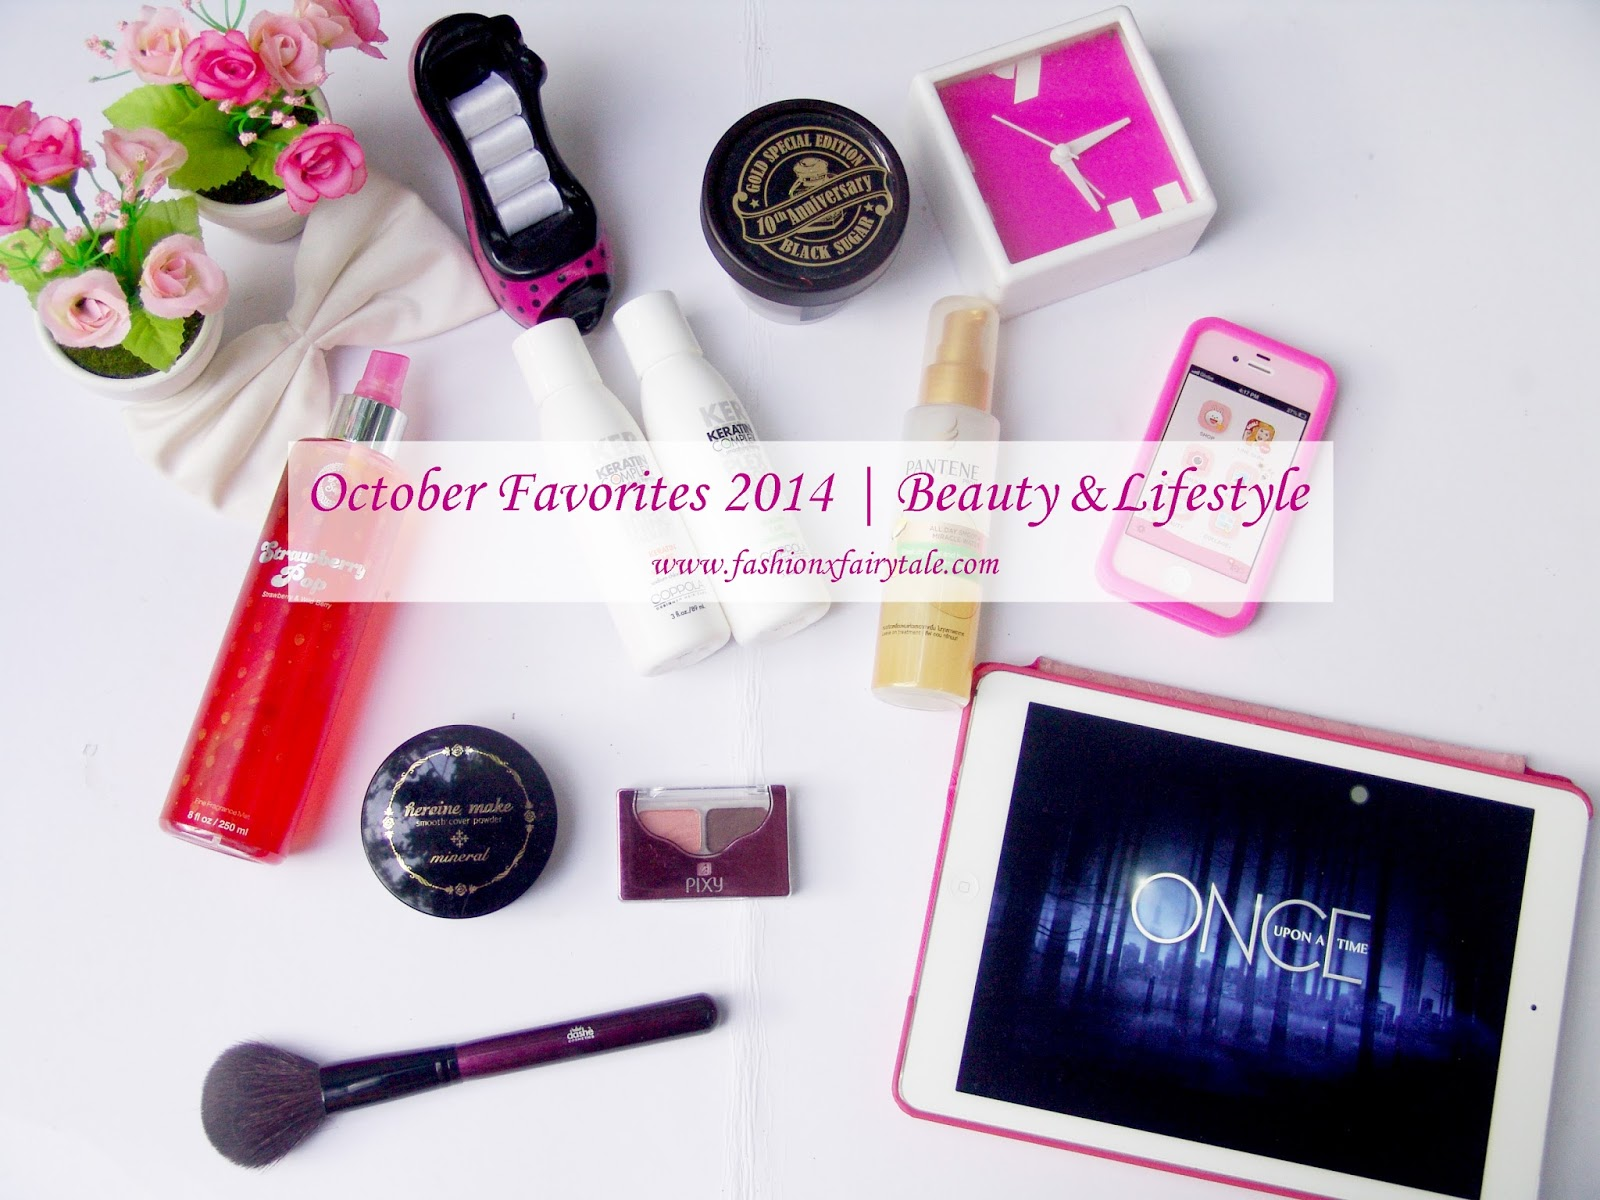 October Favorites 2014 | Beauty & Lifestyle